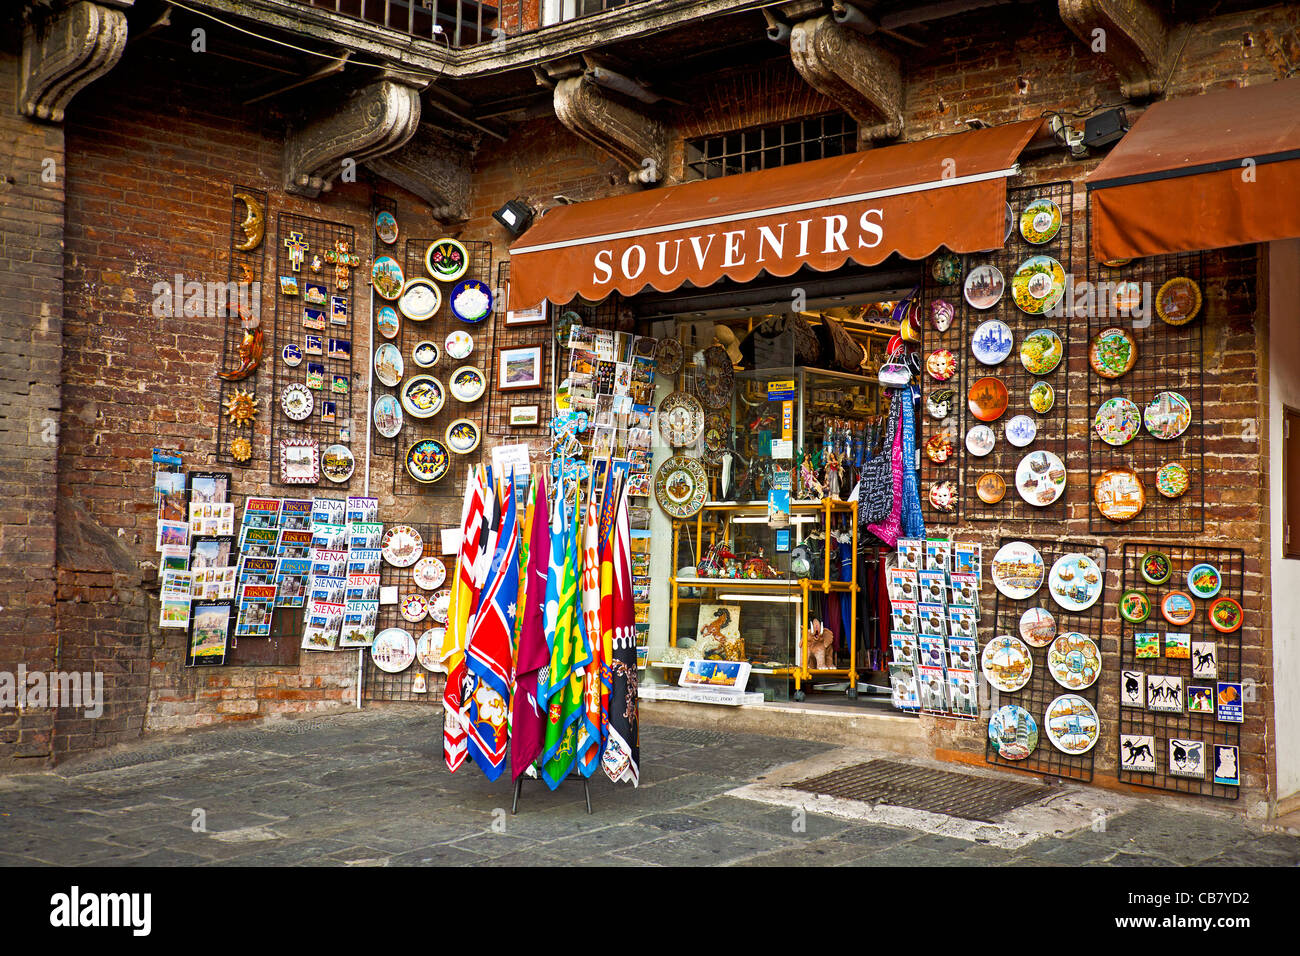 Souvenir shop in the Piazza di Campo, Siena, Tuscany. Plates, guidebooks, maps, scarves, tiles, paintings, gifts, - Stock Image